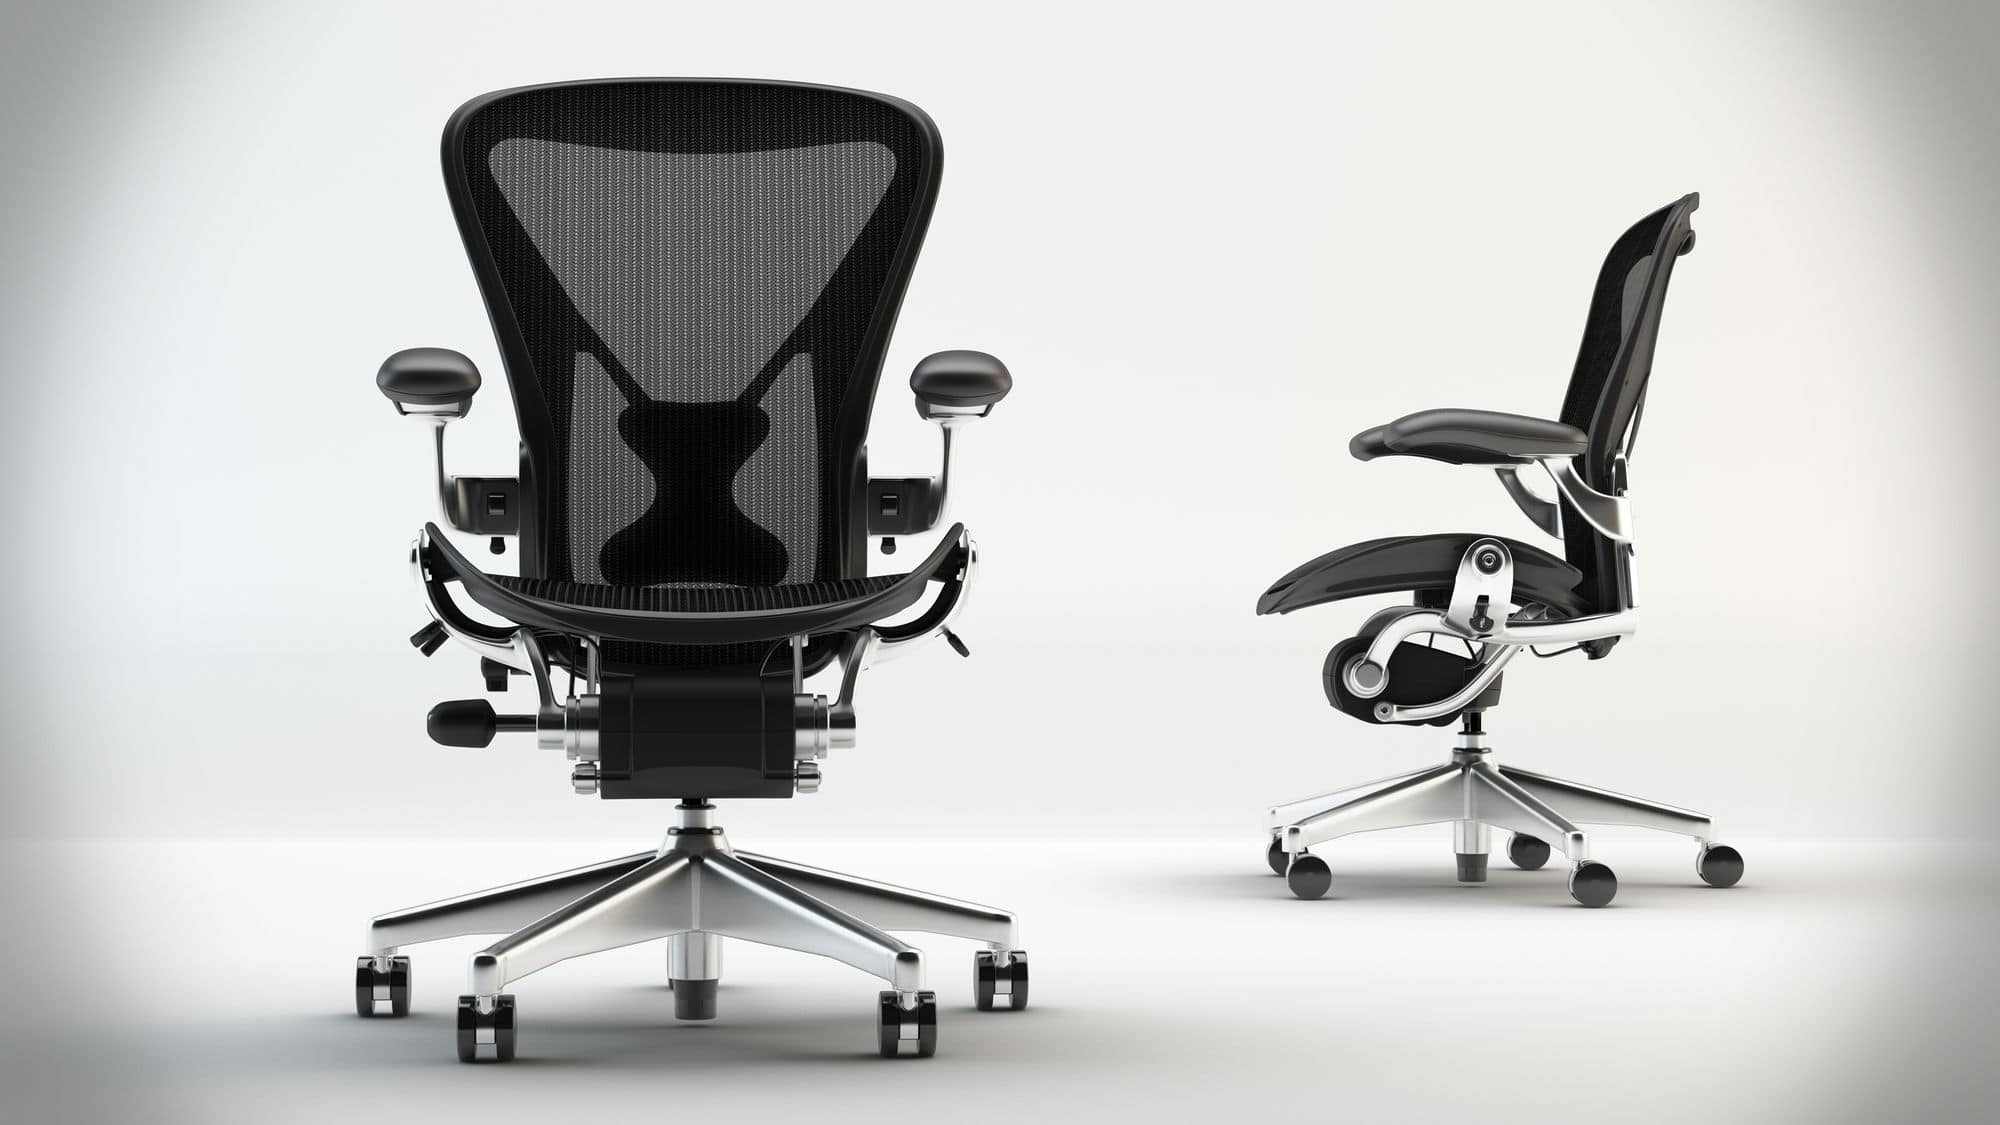 desk chair herman miller ikea jennylund top 16 best ergonomic office chairs 2019 editors pick aeron